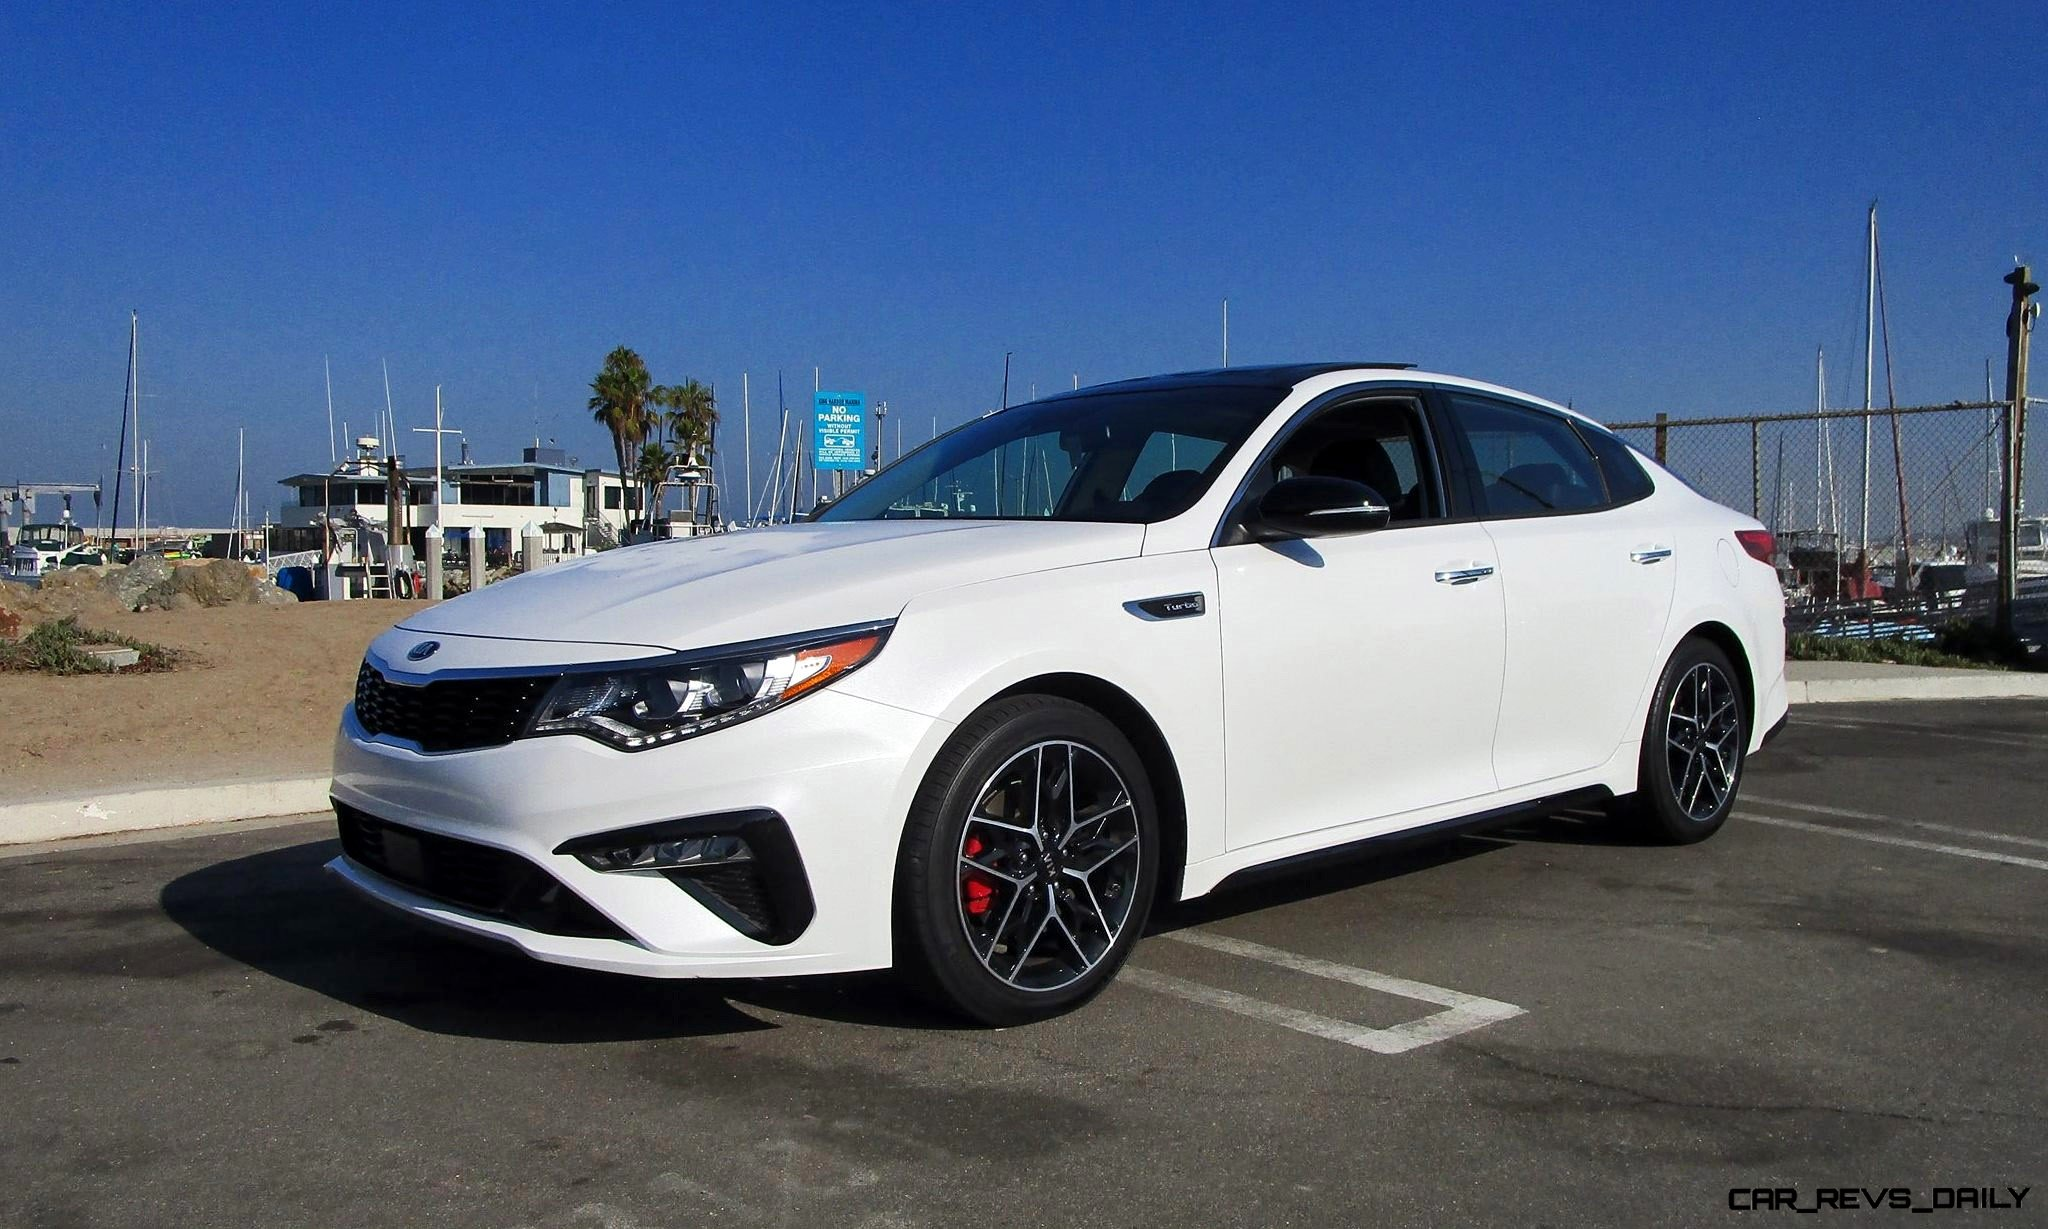 2016 Kia Optima Sx Turbo >> 2019 Kia Optima SX Turbo - Road Test Review - By Ben Lewis